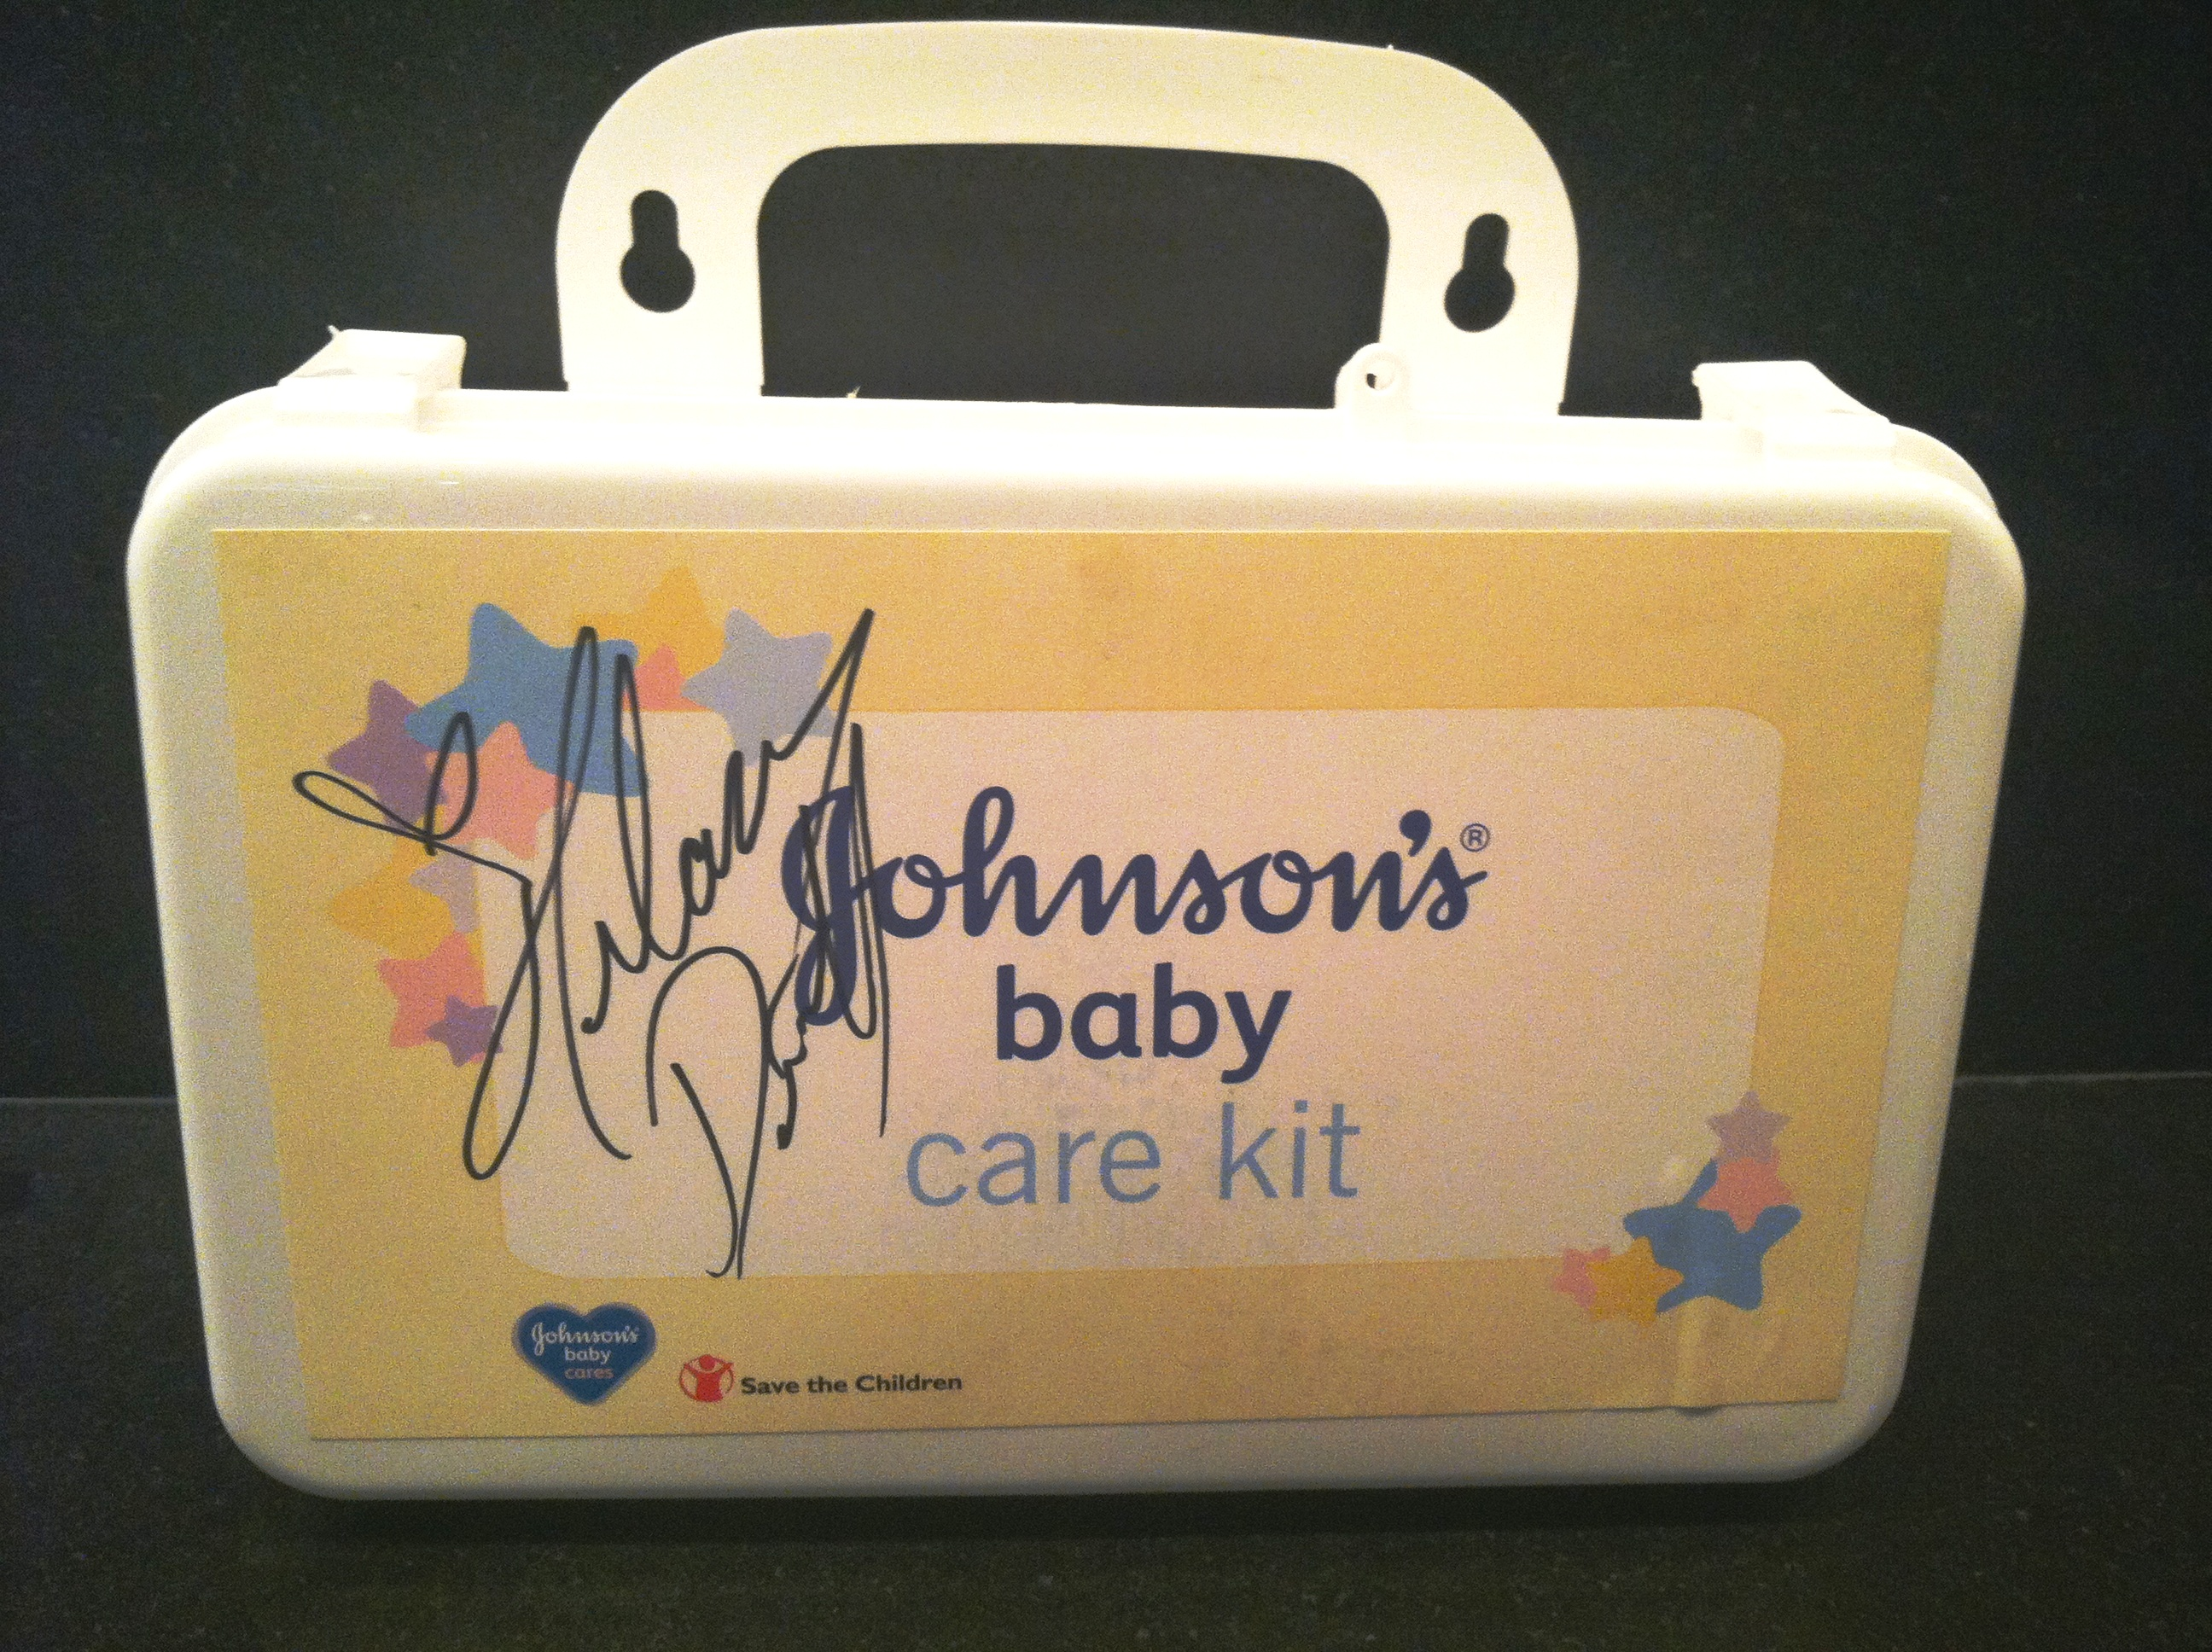 Baby Gift Basket Kit : Hilary duff signed johnson s? baby care kit and gift